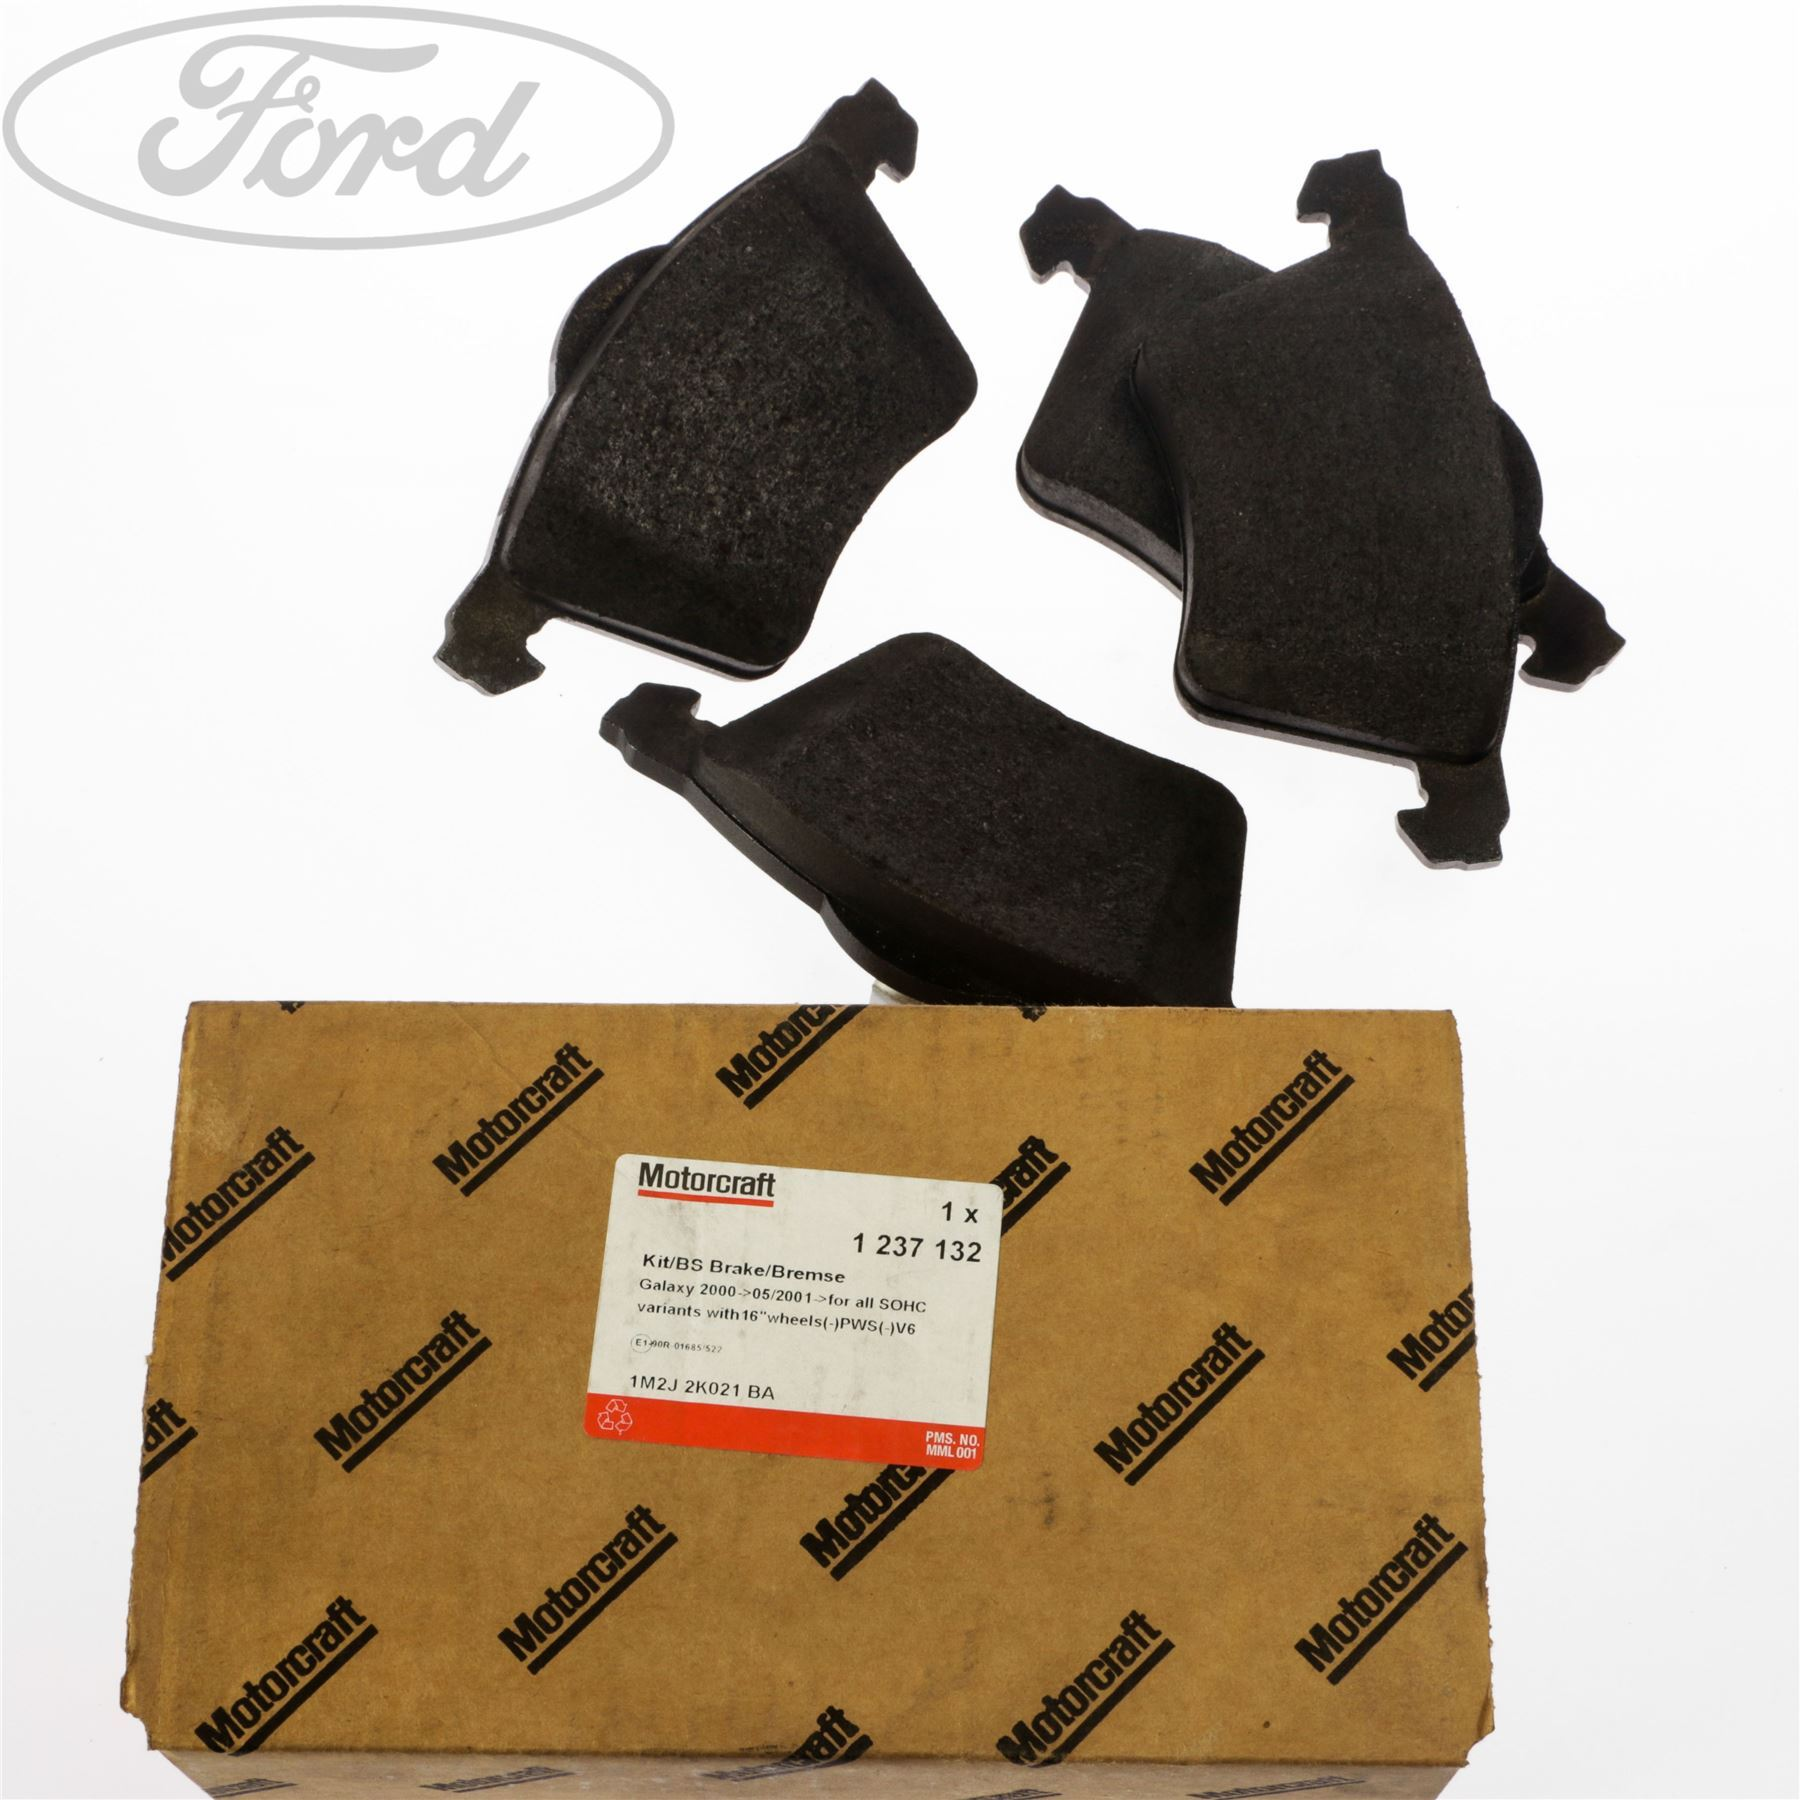 hight resolution of details about genuine ford galaxy mk1 2 0 2 3 front brake pads kit 115 145 bhp 00 06 1947391